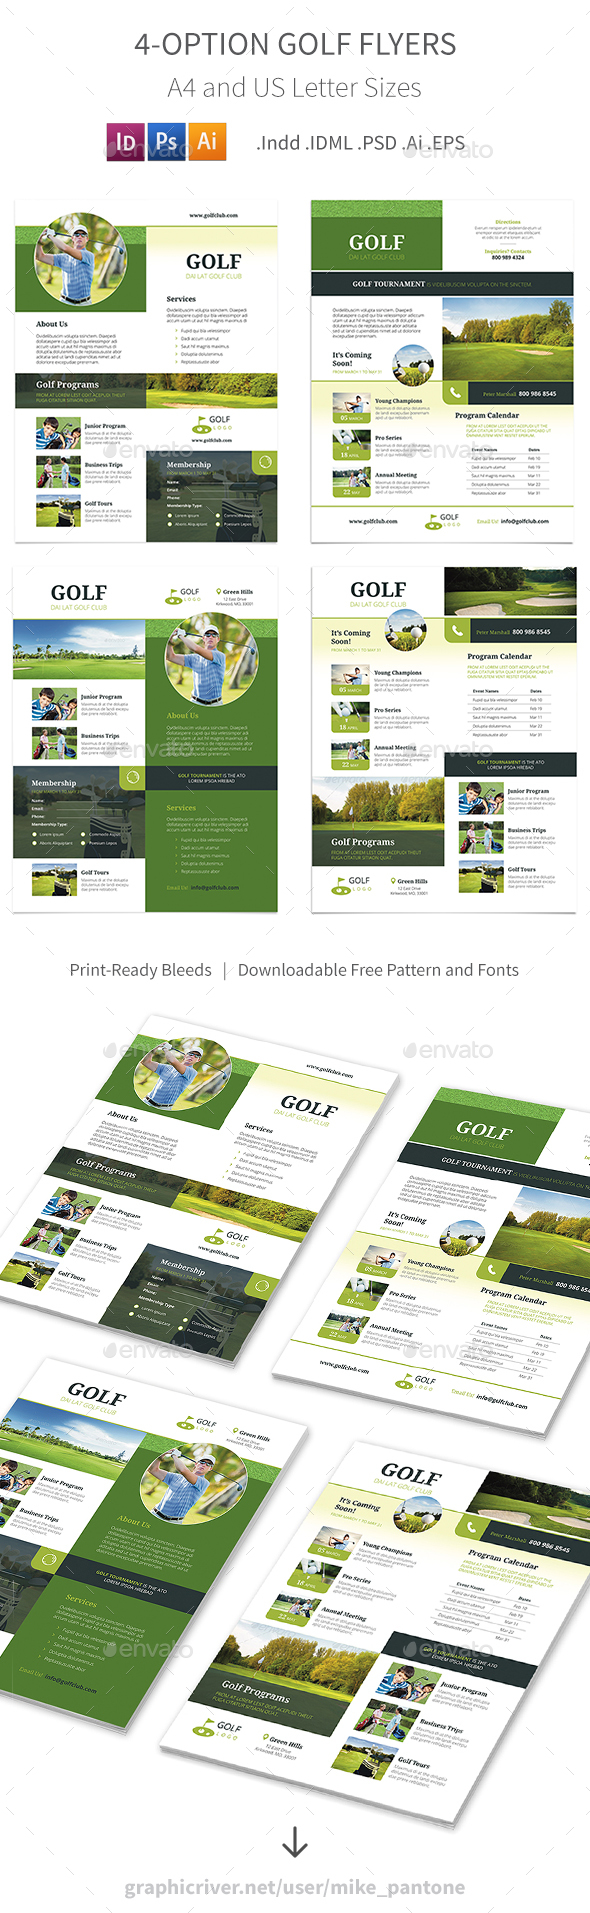 Golf Flyers 5 – 4 Options - Corporate Flyers